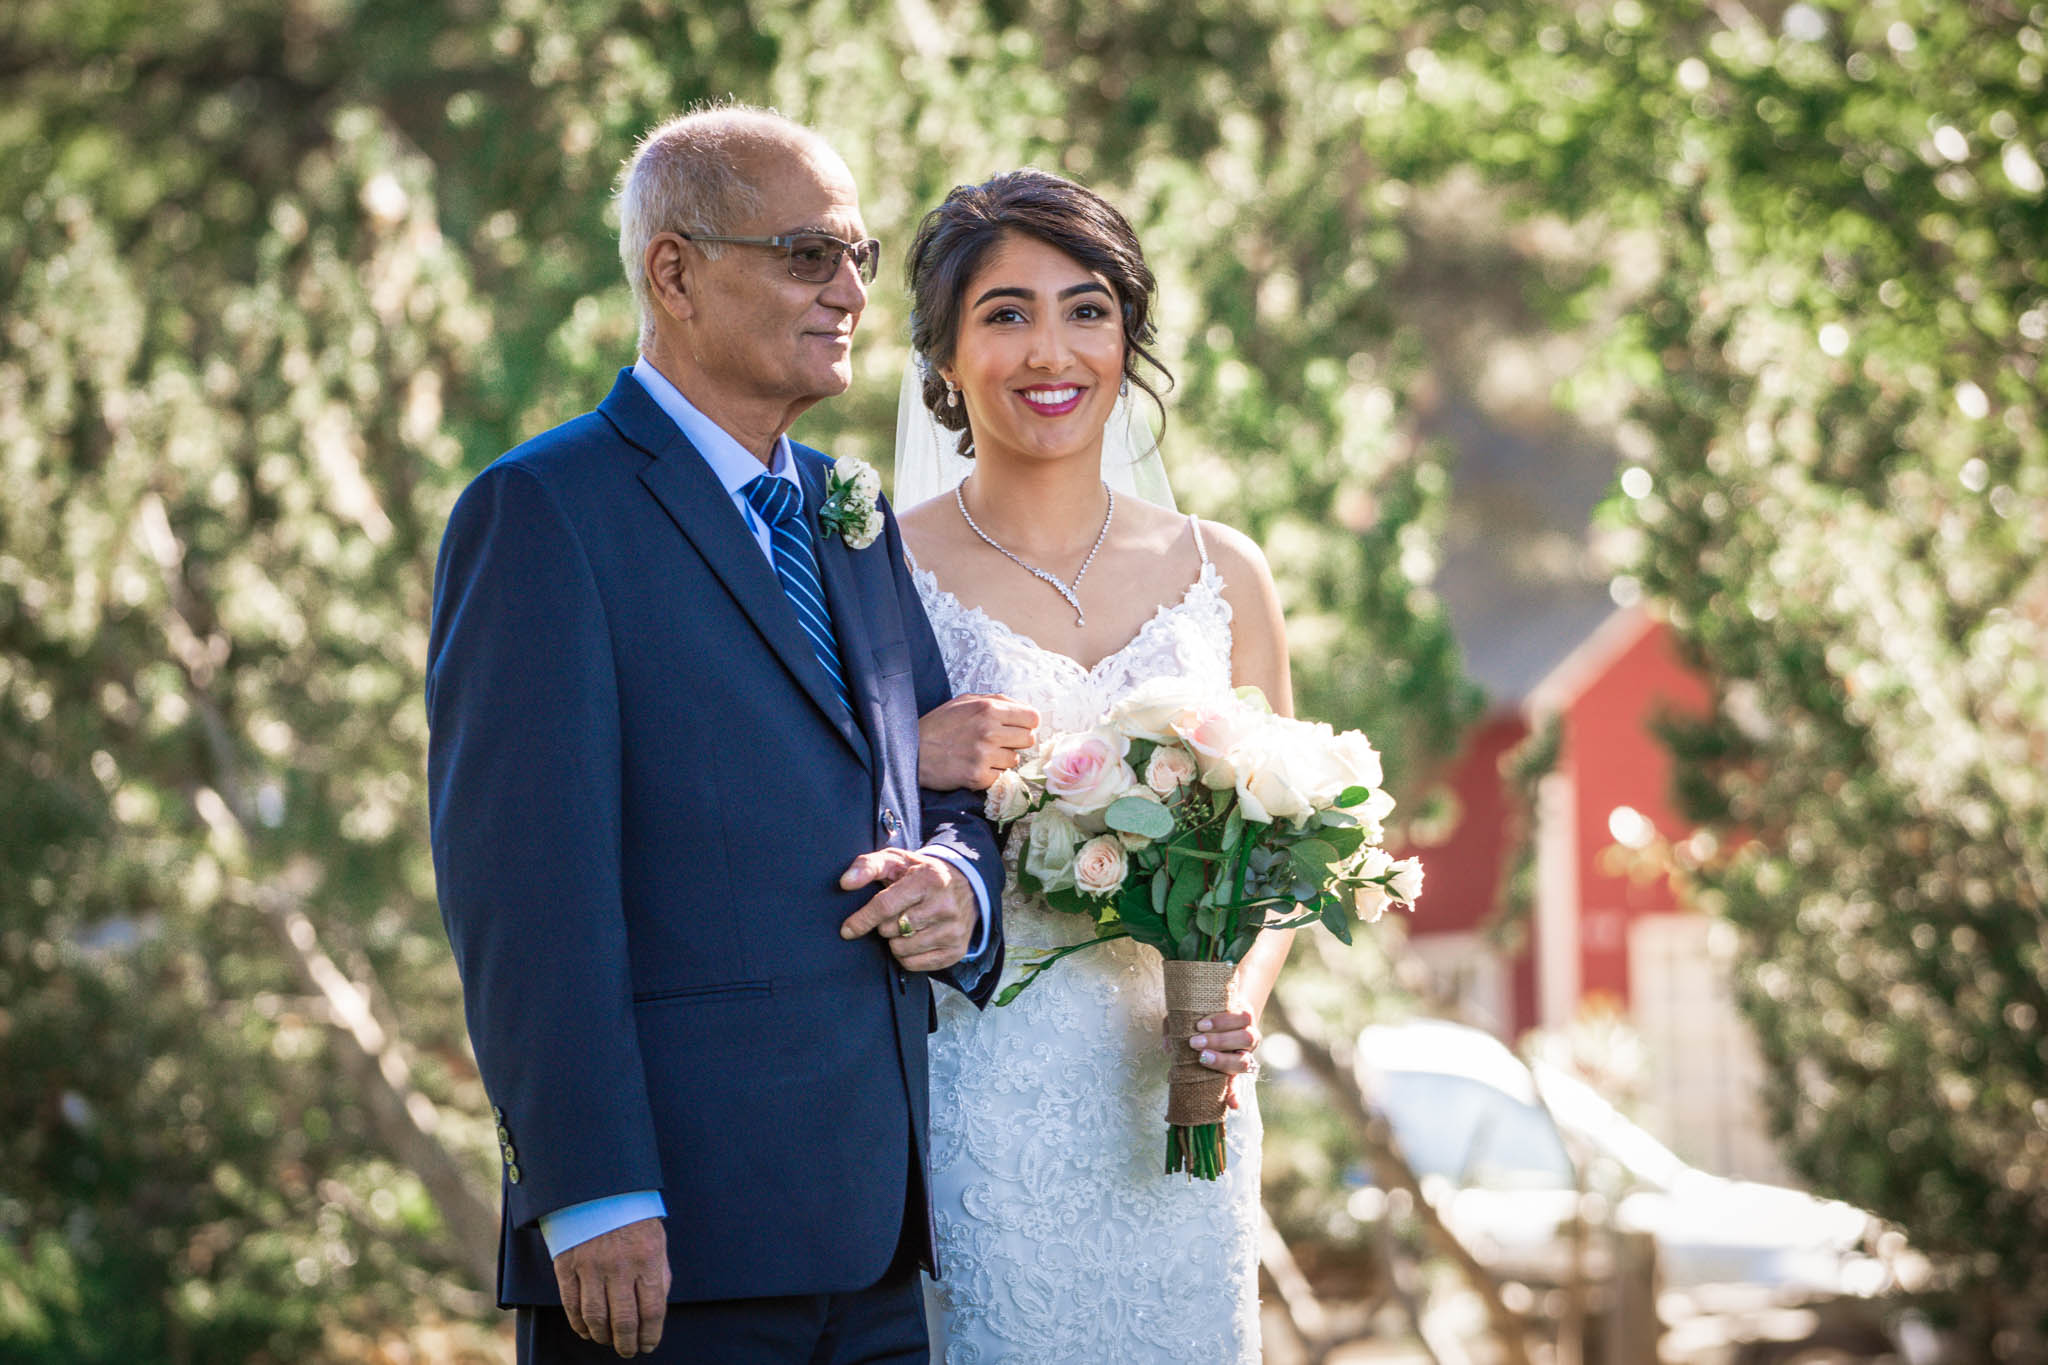 Bride's father holds his daughter's hand as they prepare to walk down the aisle